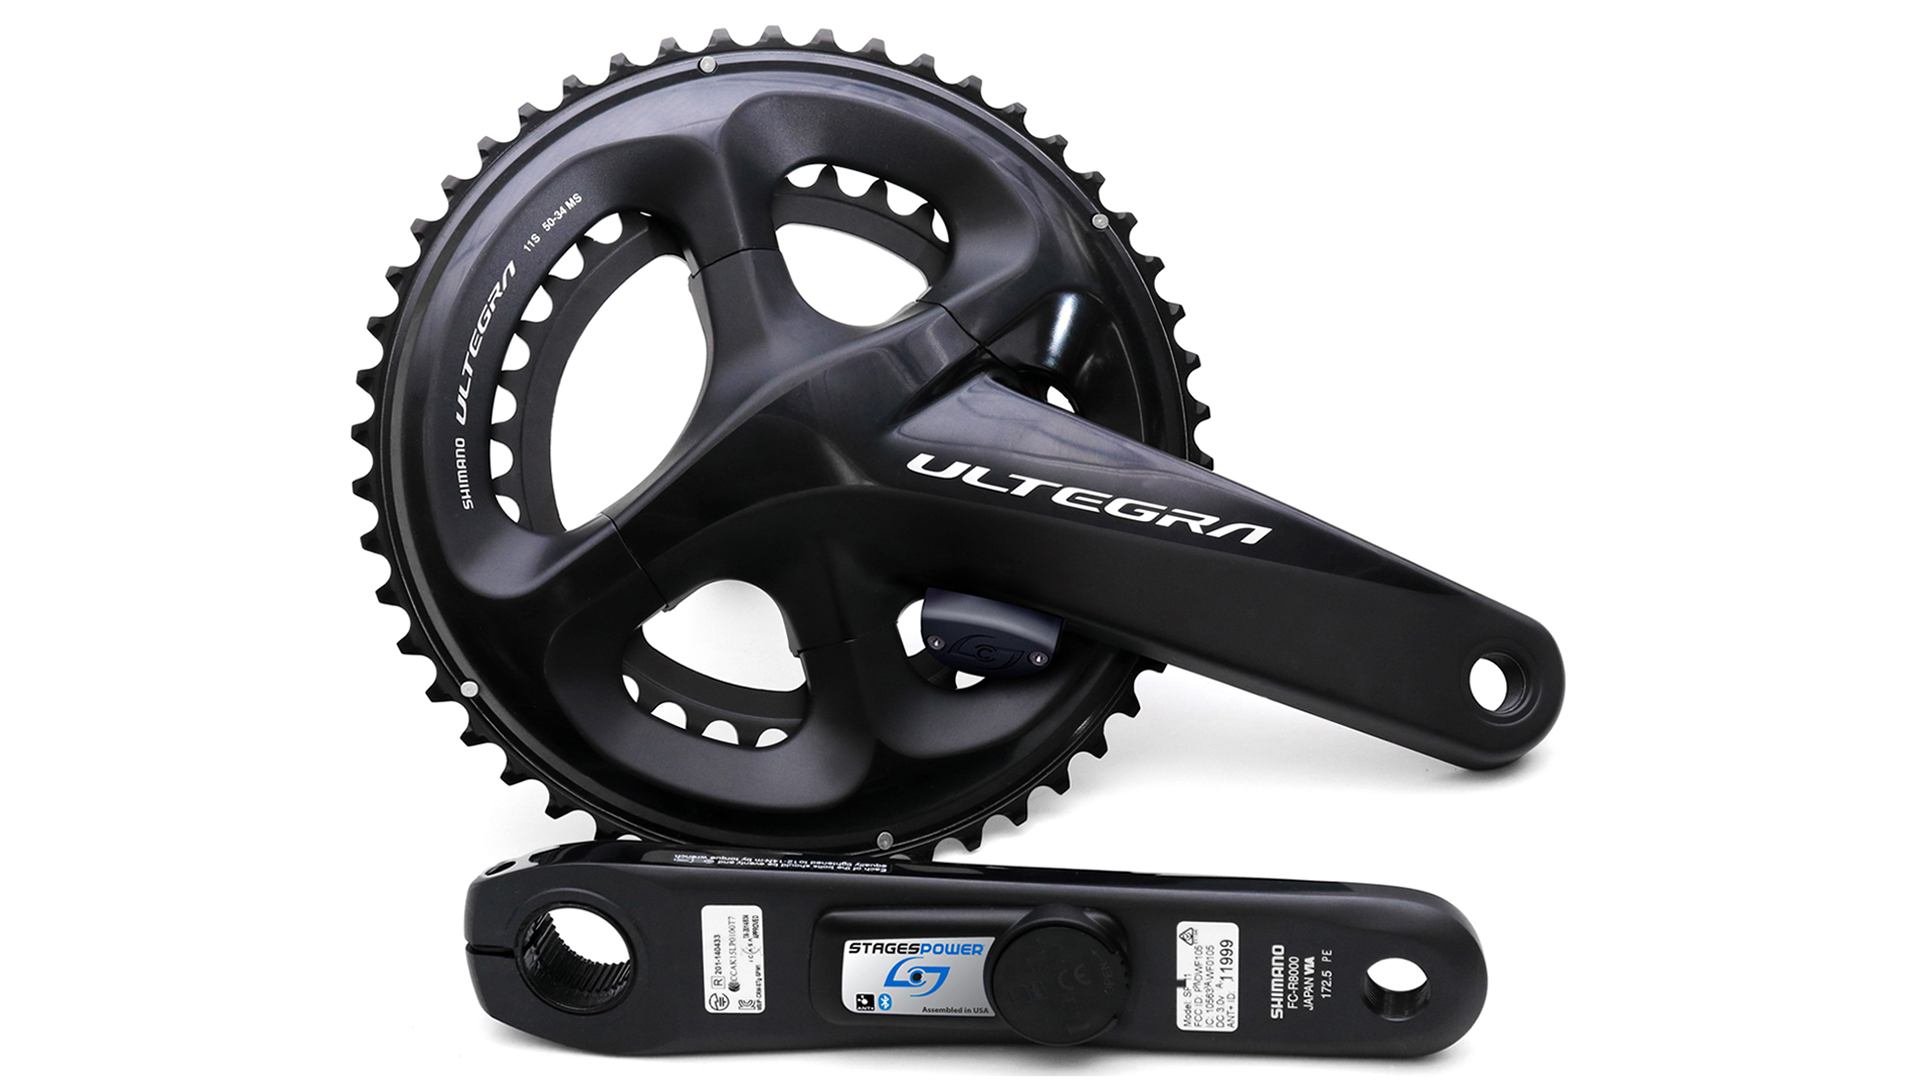 5 best power meters for cycling 2019 | Cyclingnews